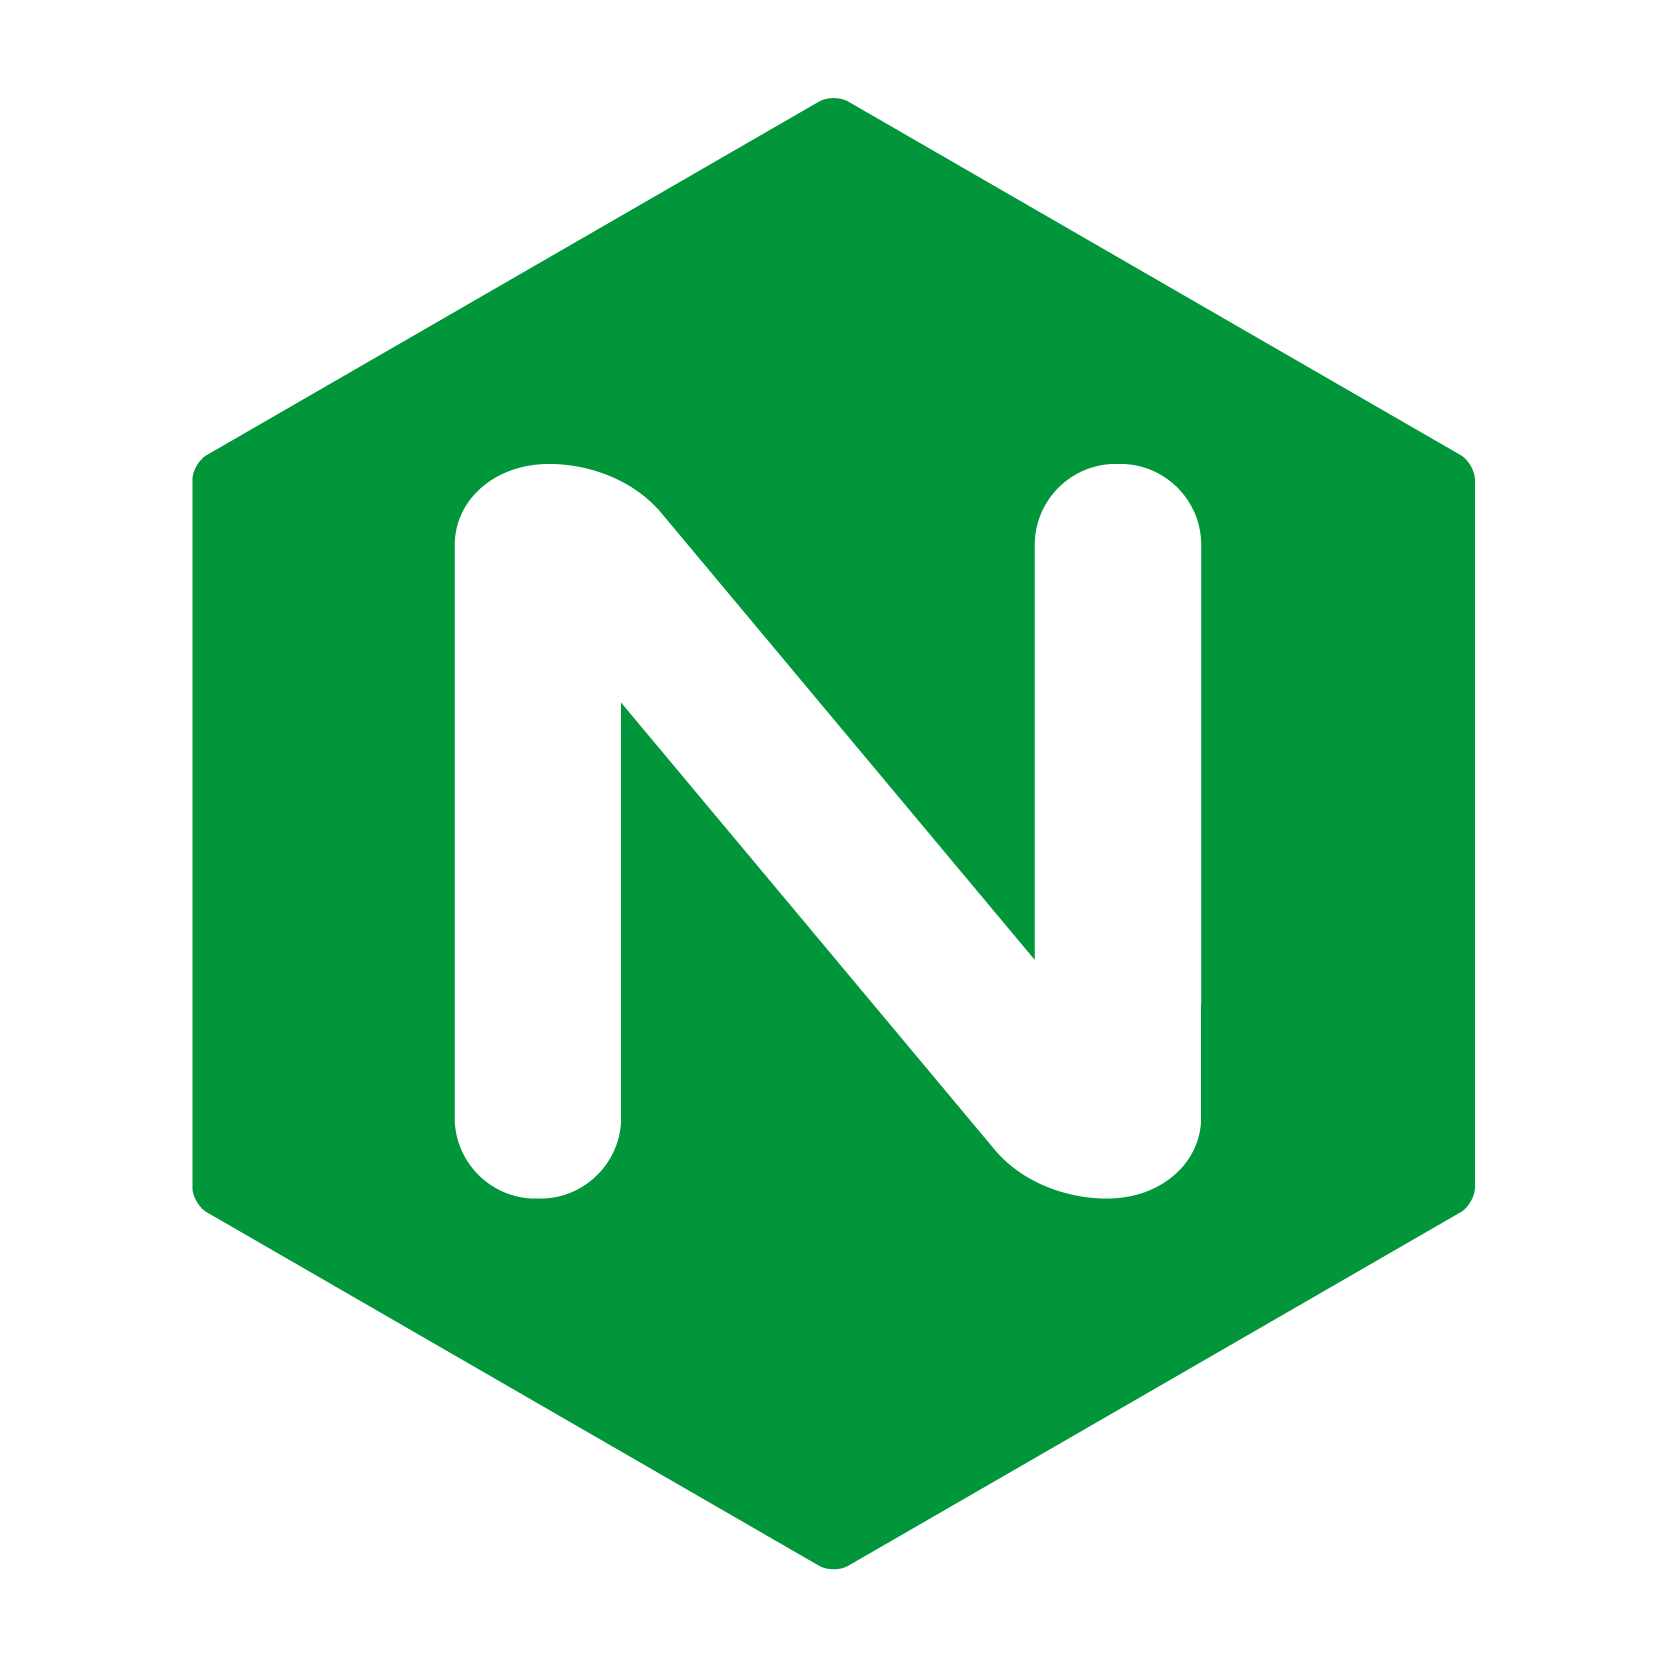 Installing and configuring Nginx on CentOS.